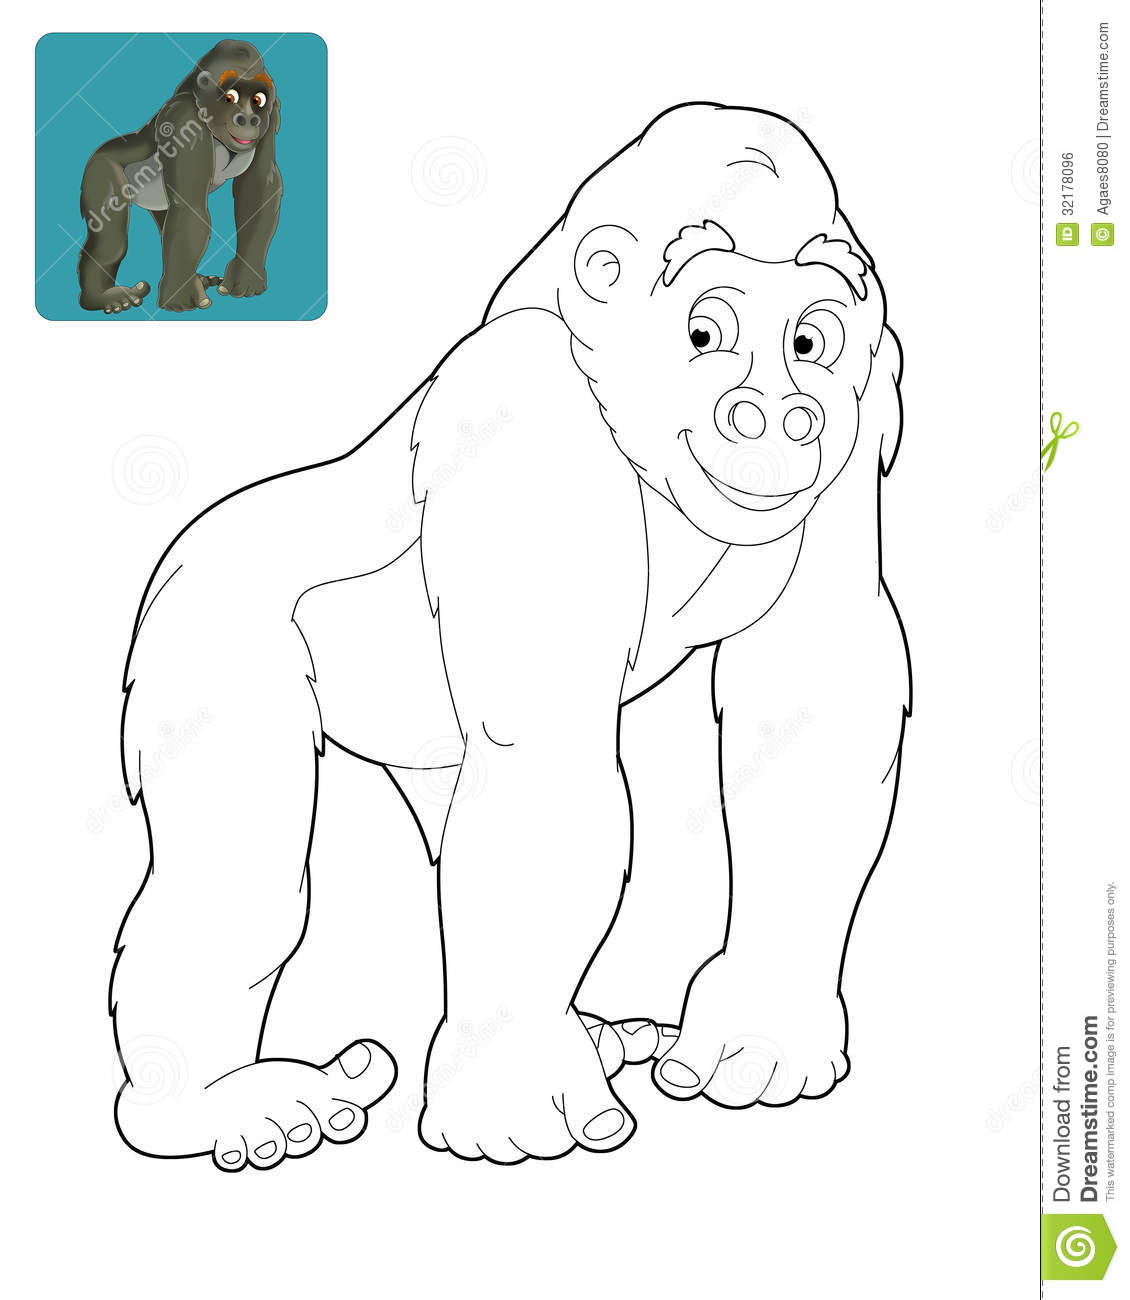 Cartoon Safari Coloring Page For The Children Royalty Free Stock Image Image 32178096